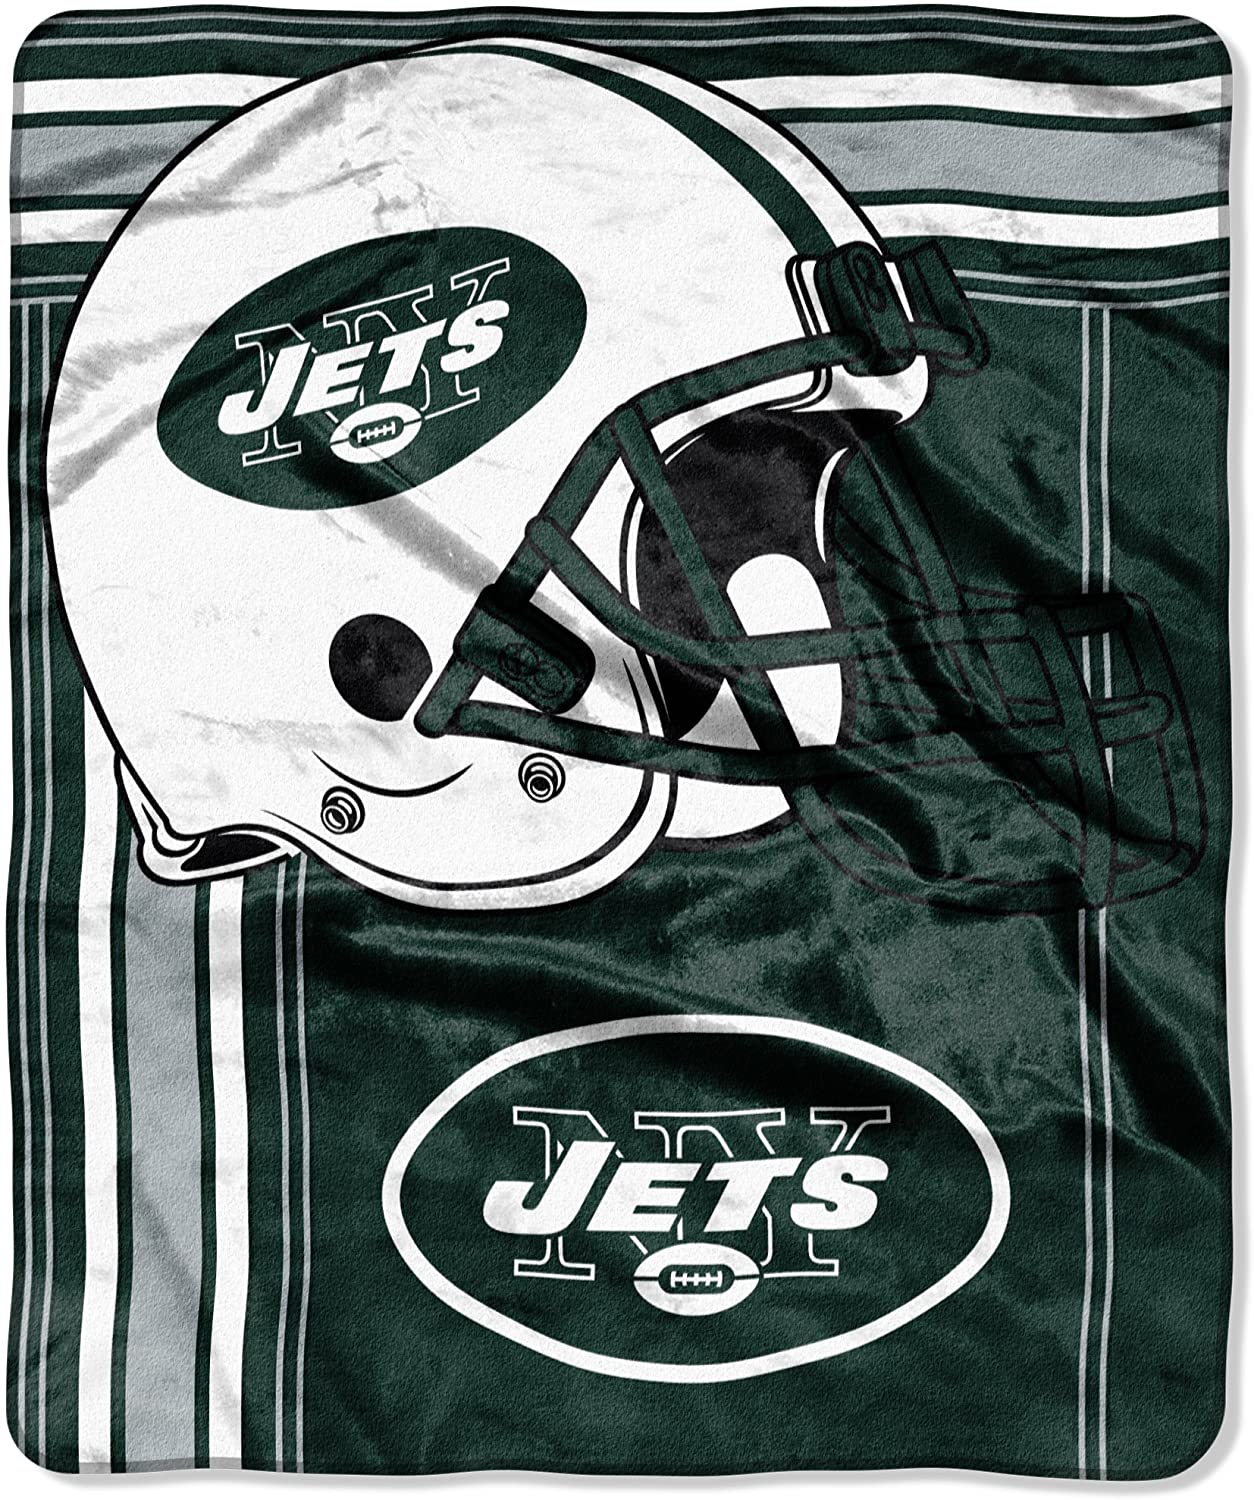 Officially Licensed Nfl Throw New York Jets Fleece Blanket